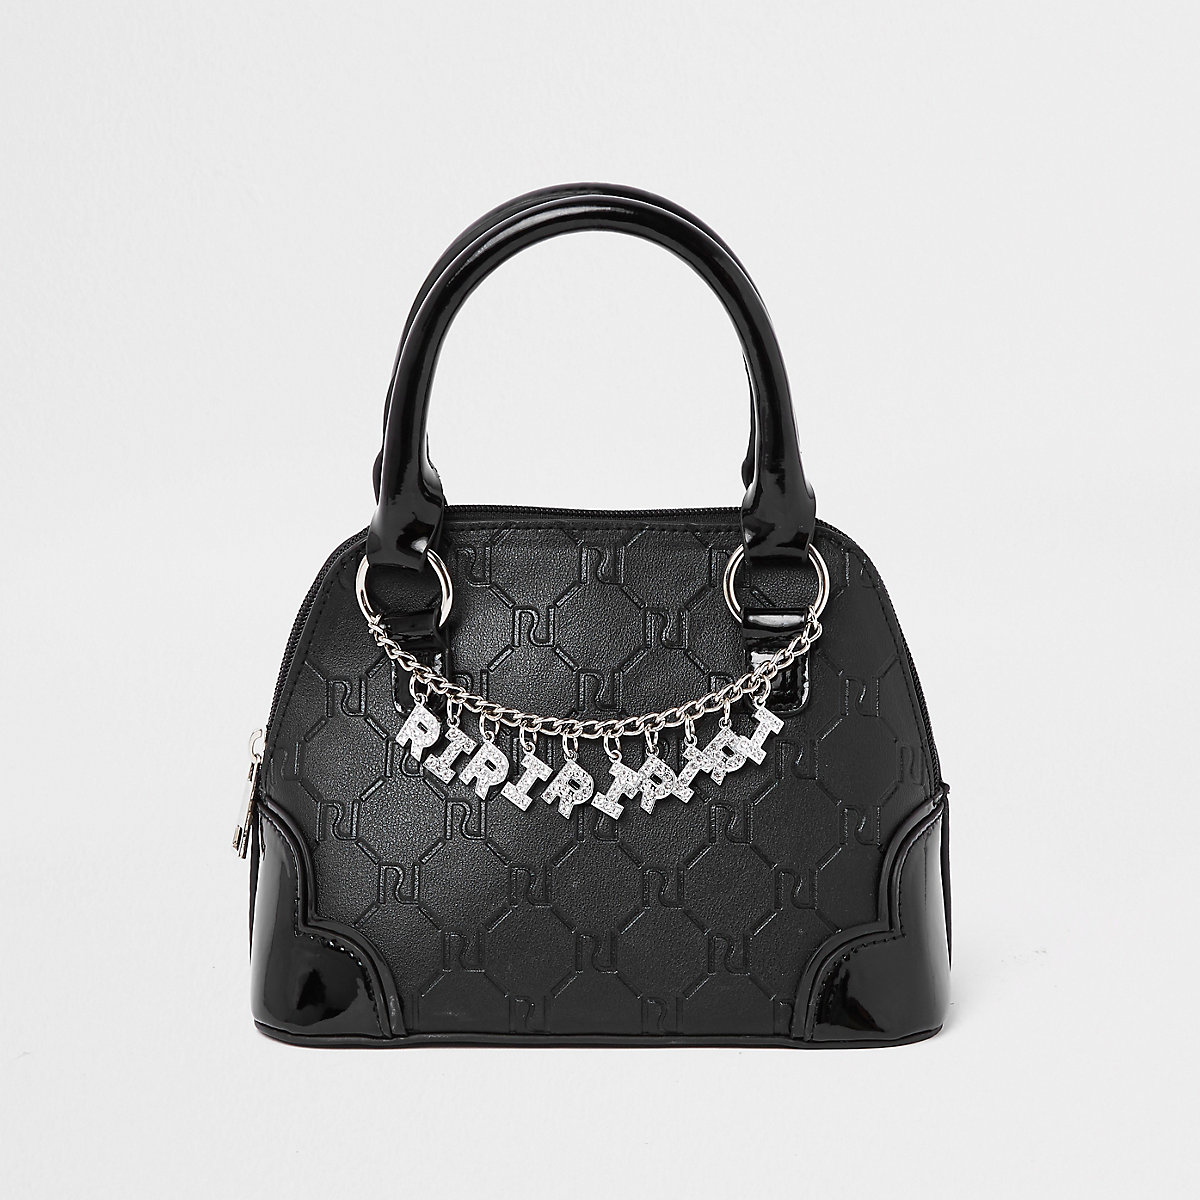 Girls black RI monogram chain tote bag